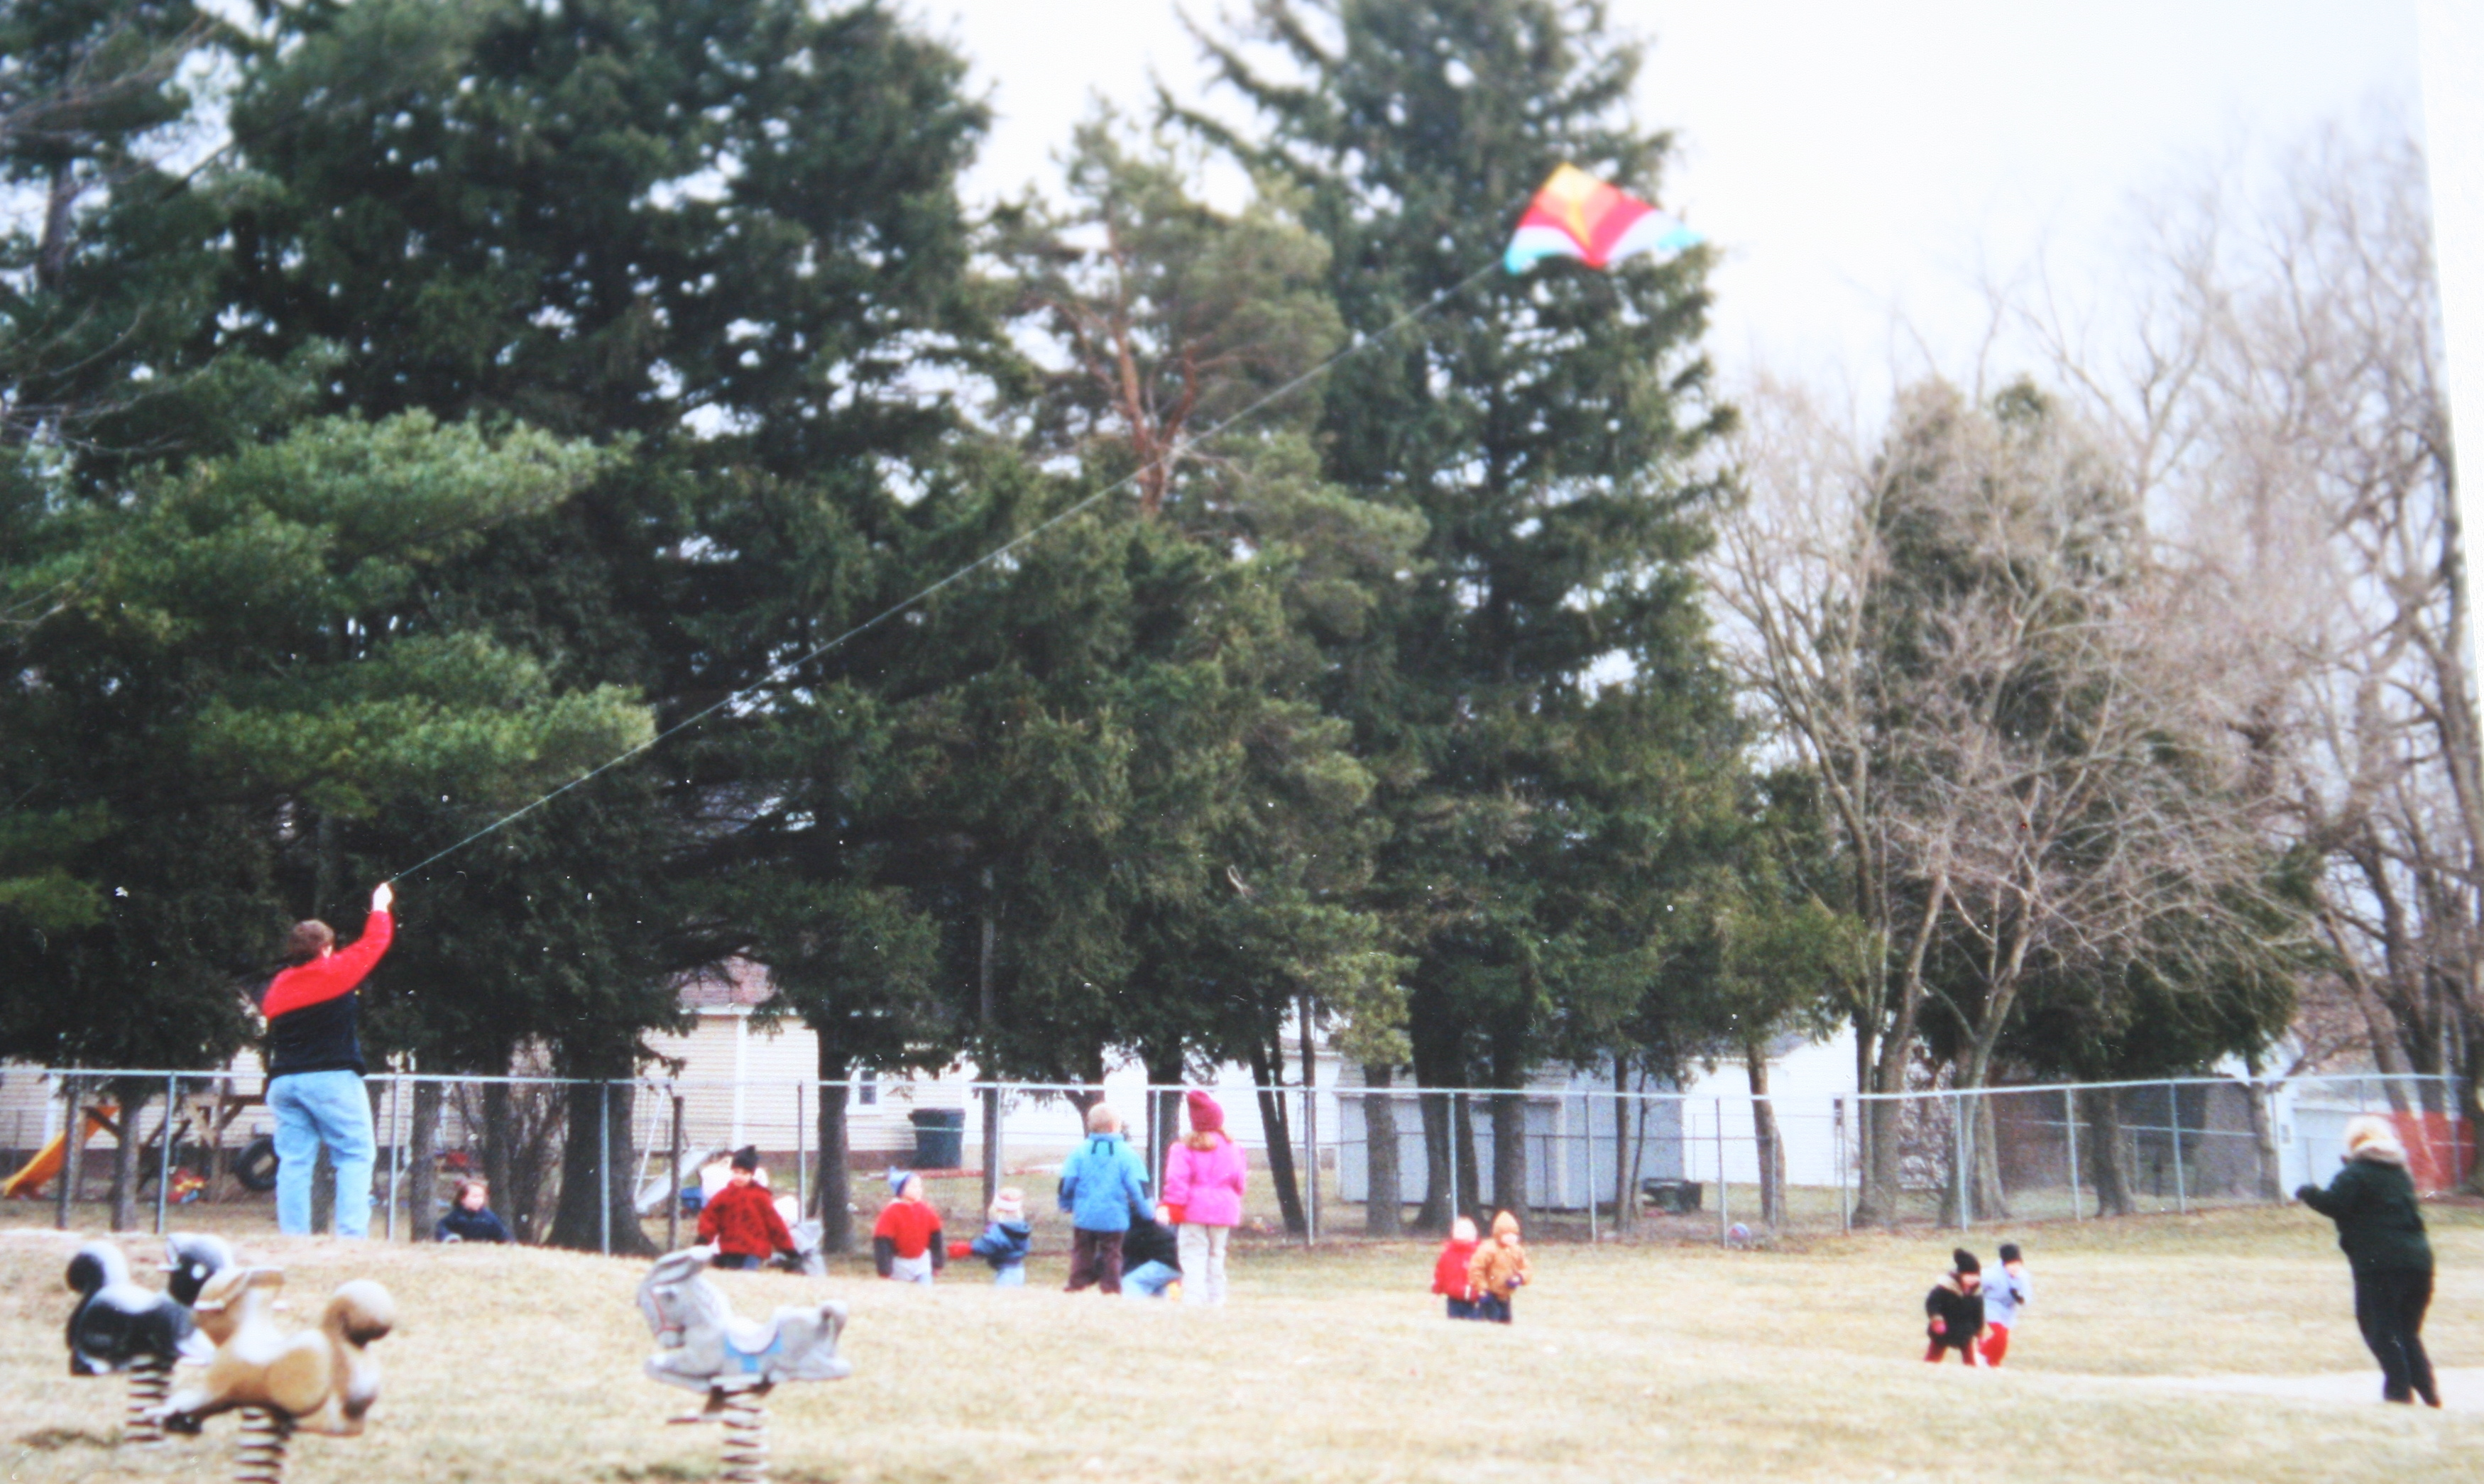 flying kites outside, kite activities, kite art projects, march bulletin board ideas, ideas for march is reading month, easy readers